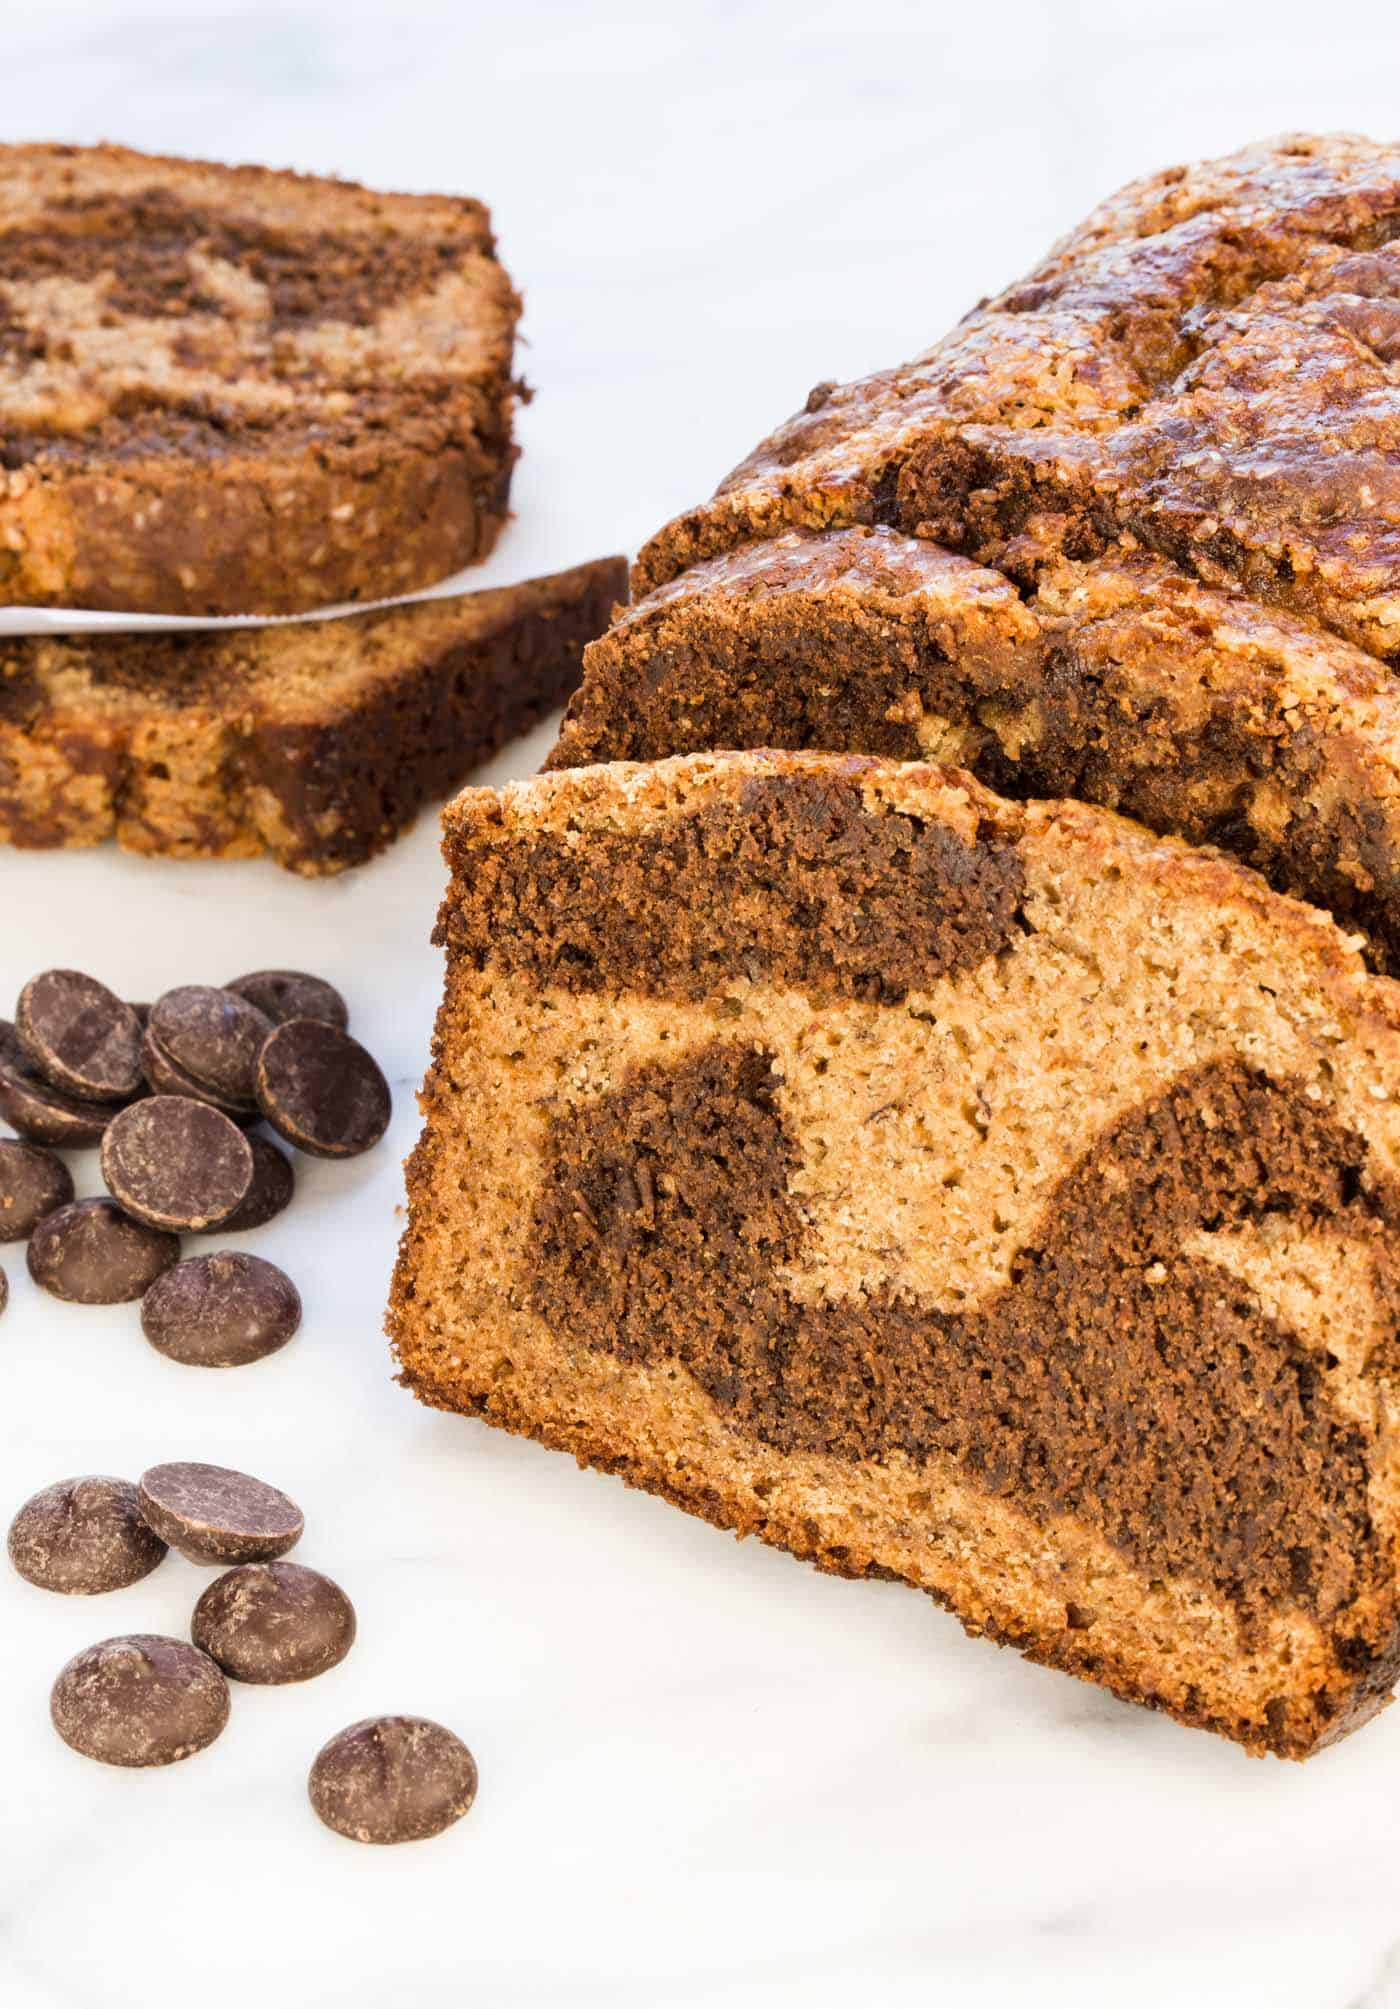 ... the swirls of chocolate in this Chocolate Marbled Banana Bread recipe